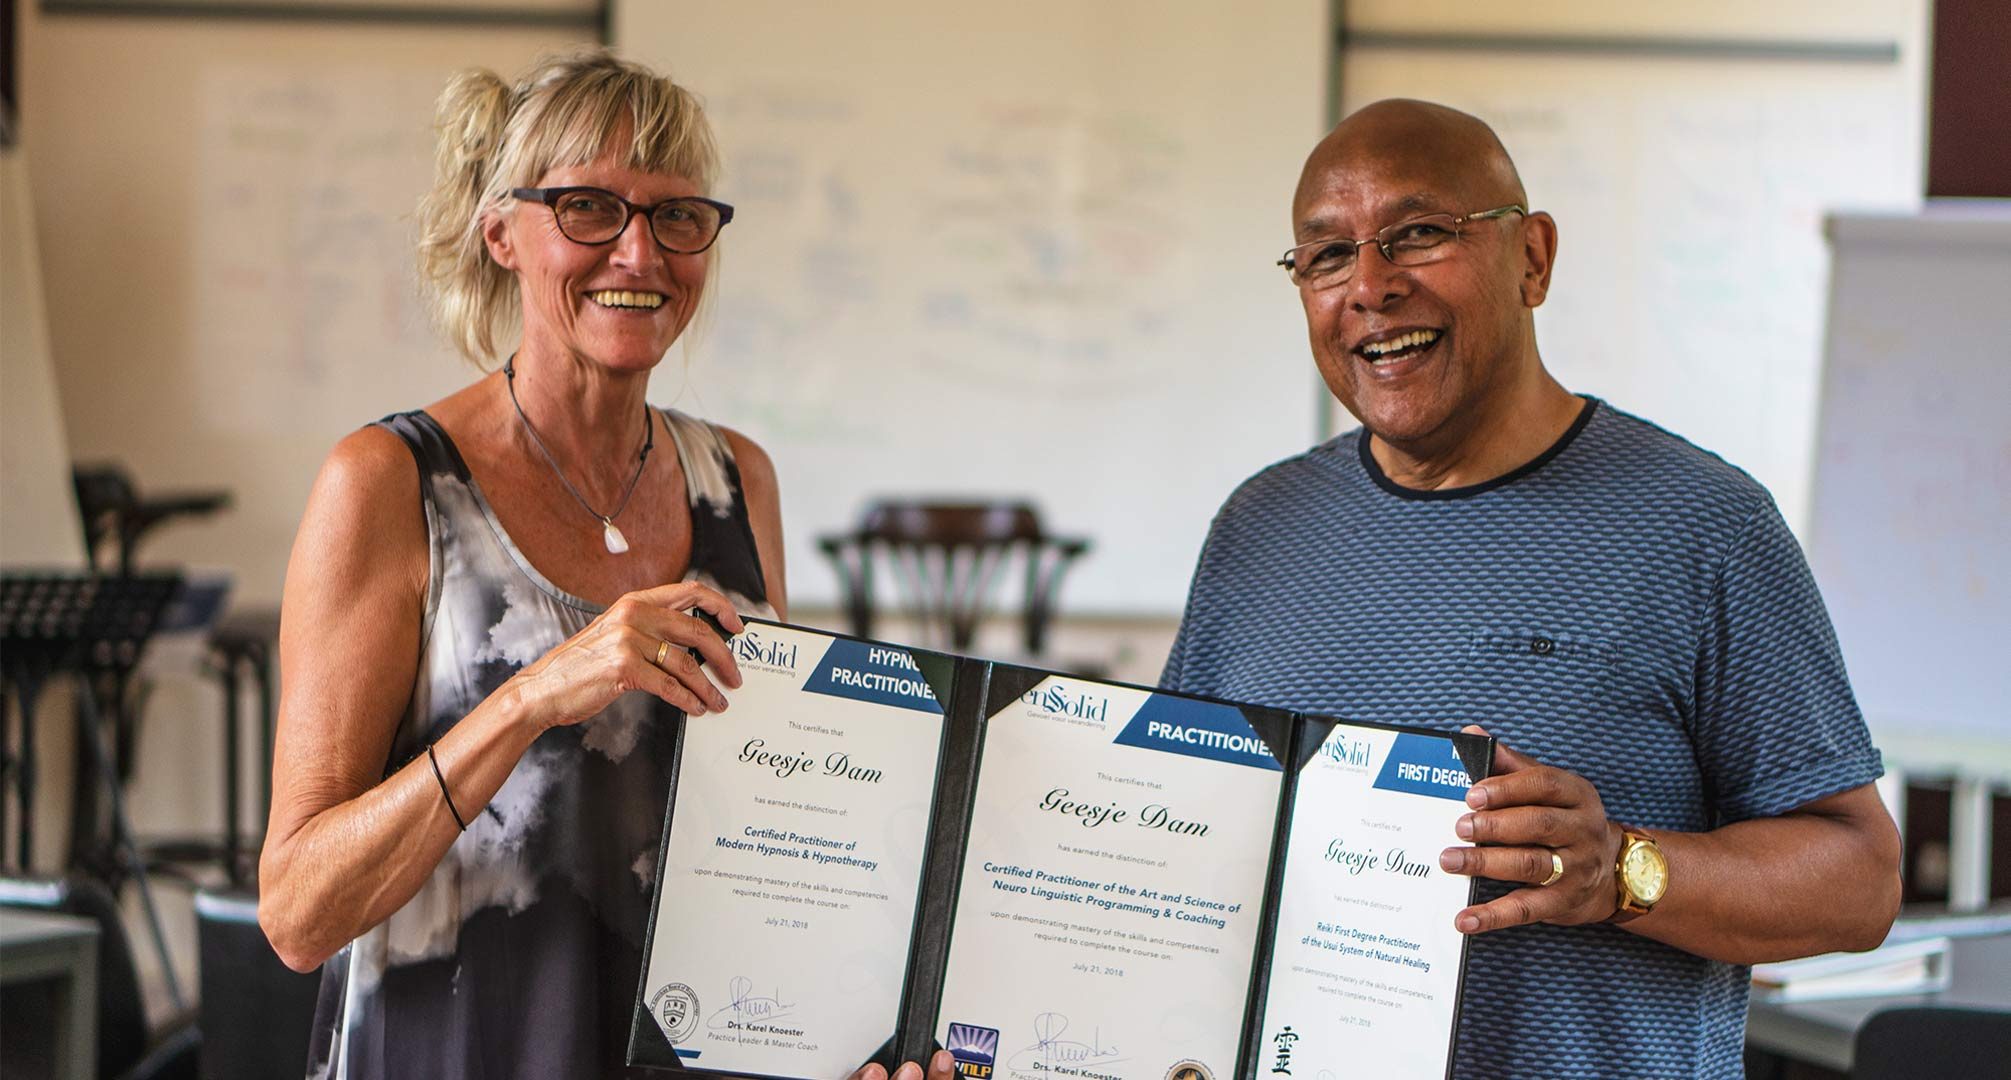 NLP Practitioner cursist ontvangt 3 internationaal erkende certificaten